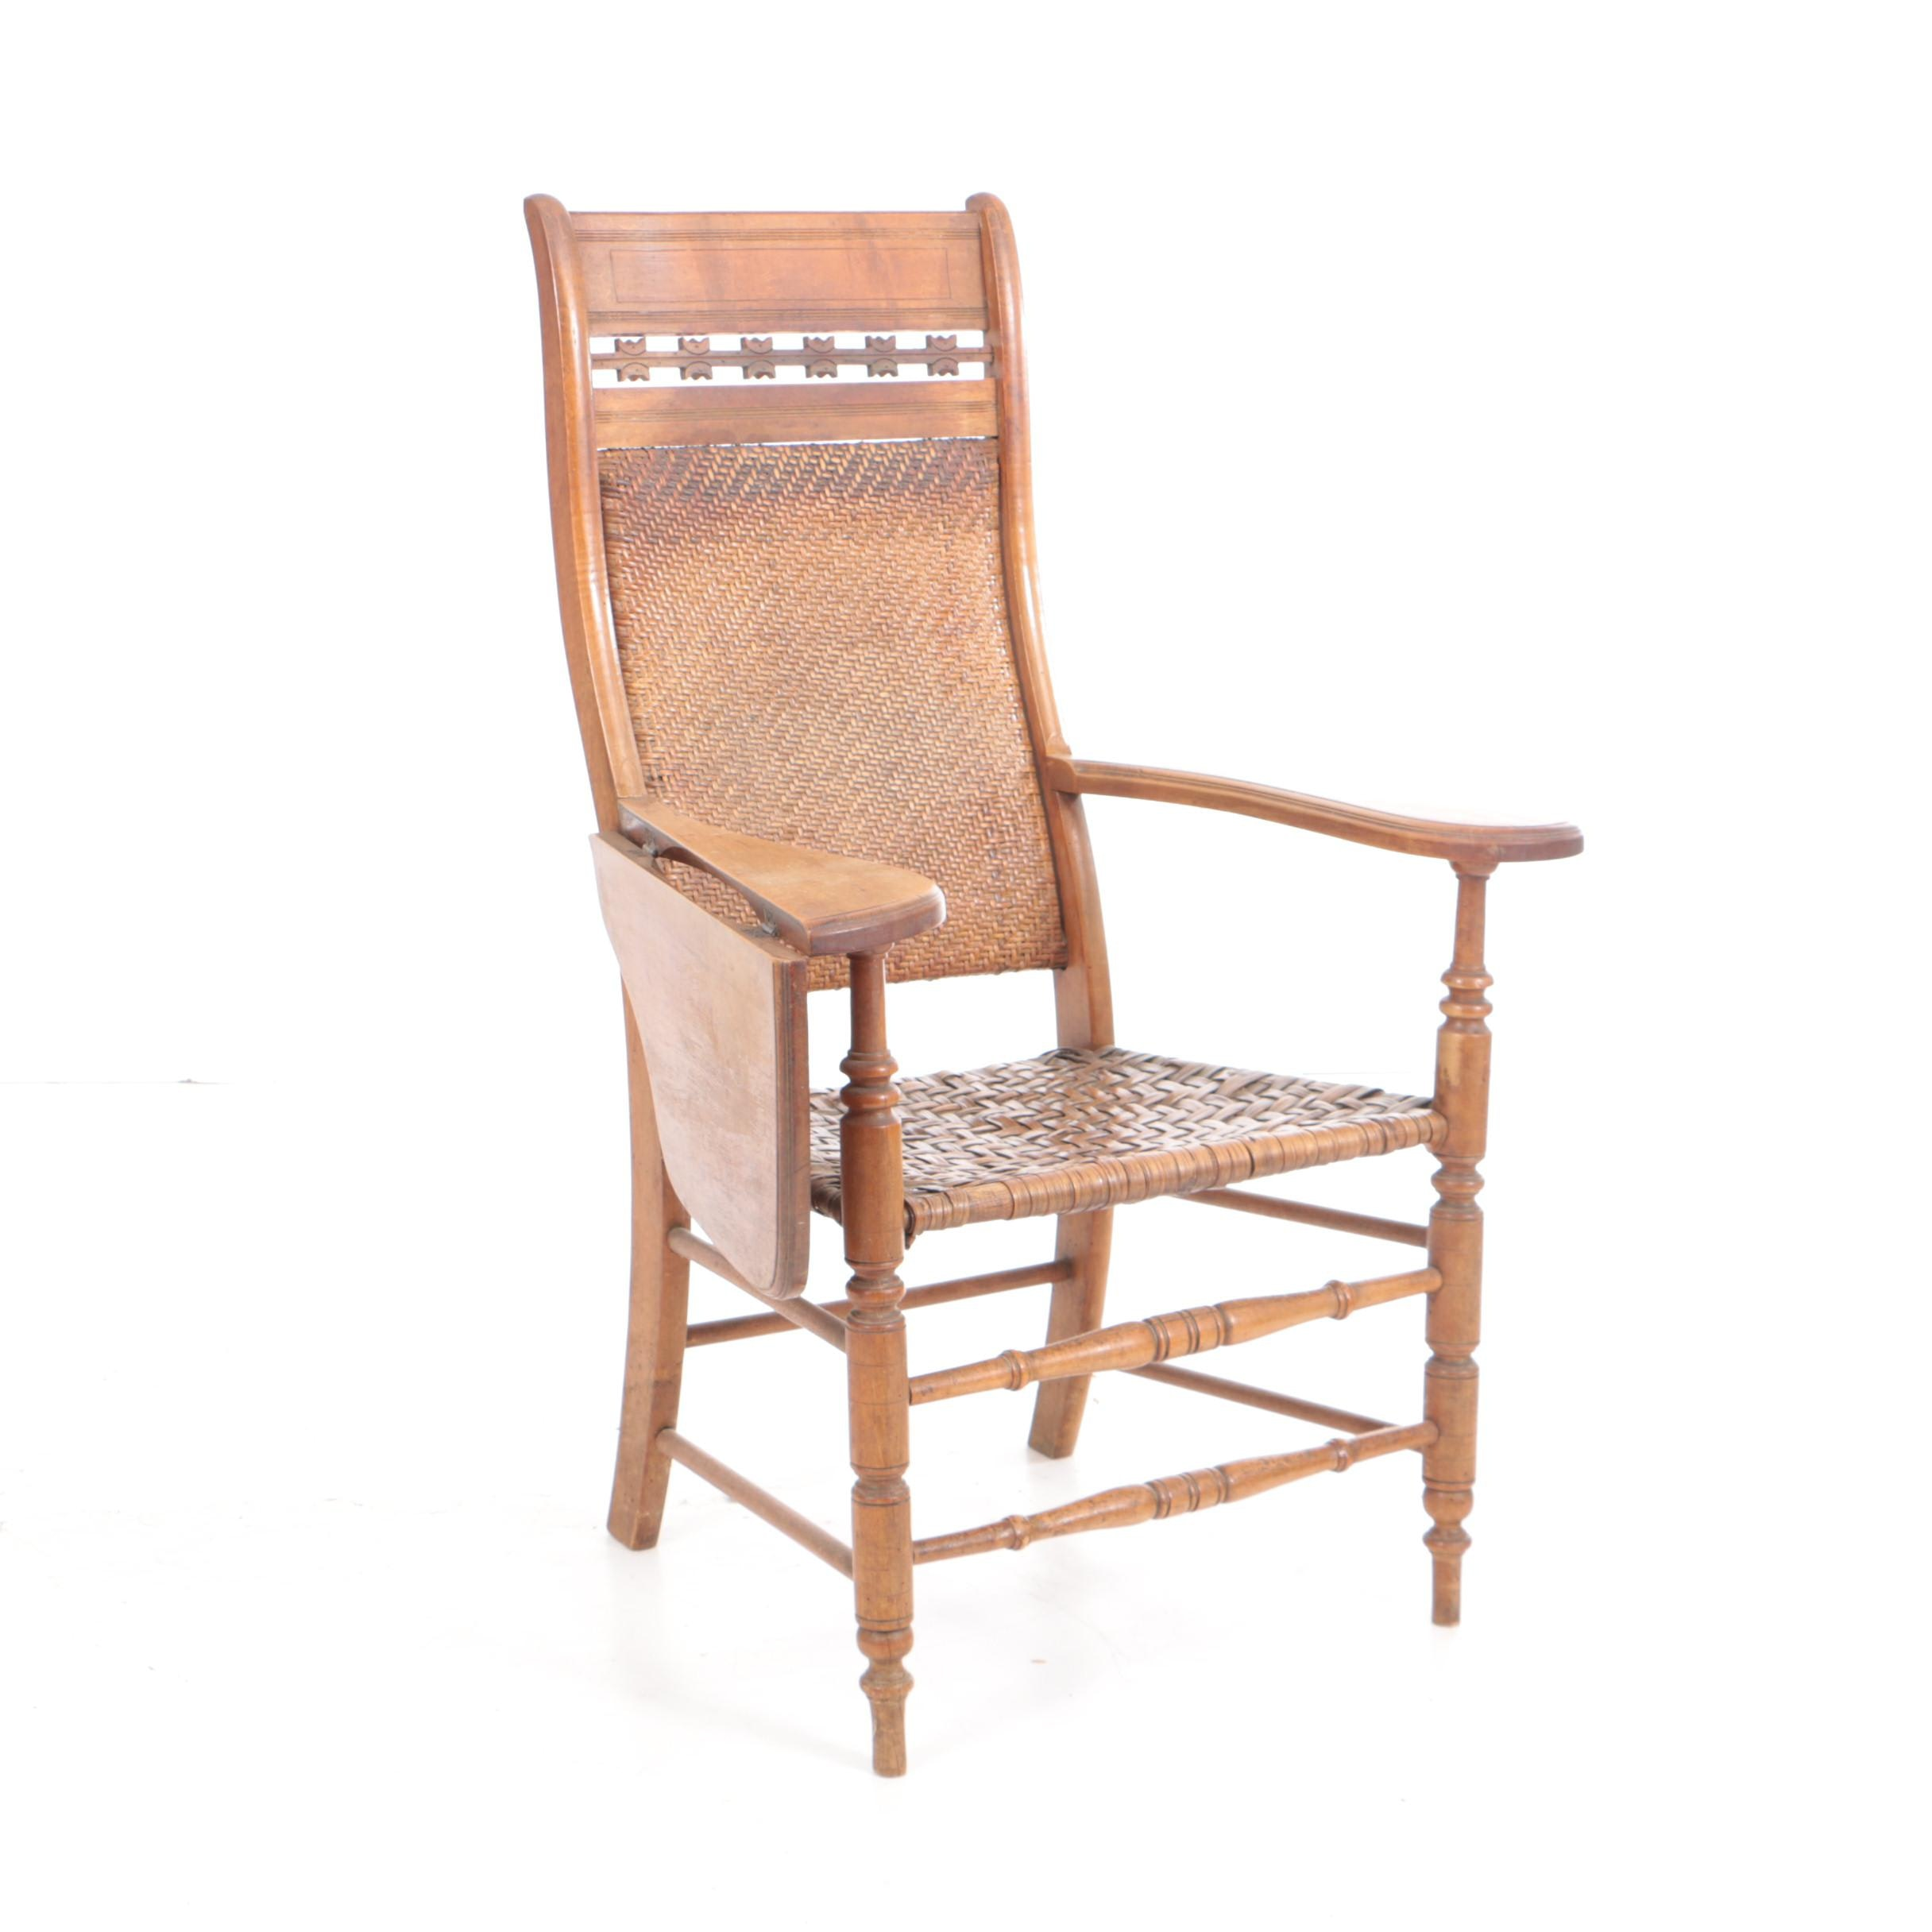 Antique Late Victorian Writing-Arm Chair with Woven Back and Seat